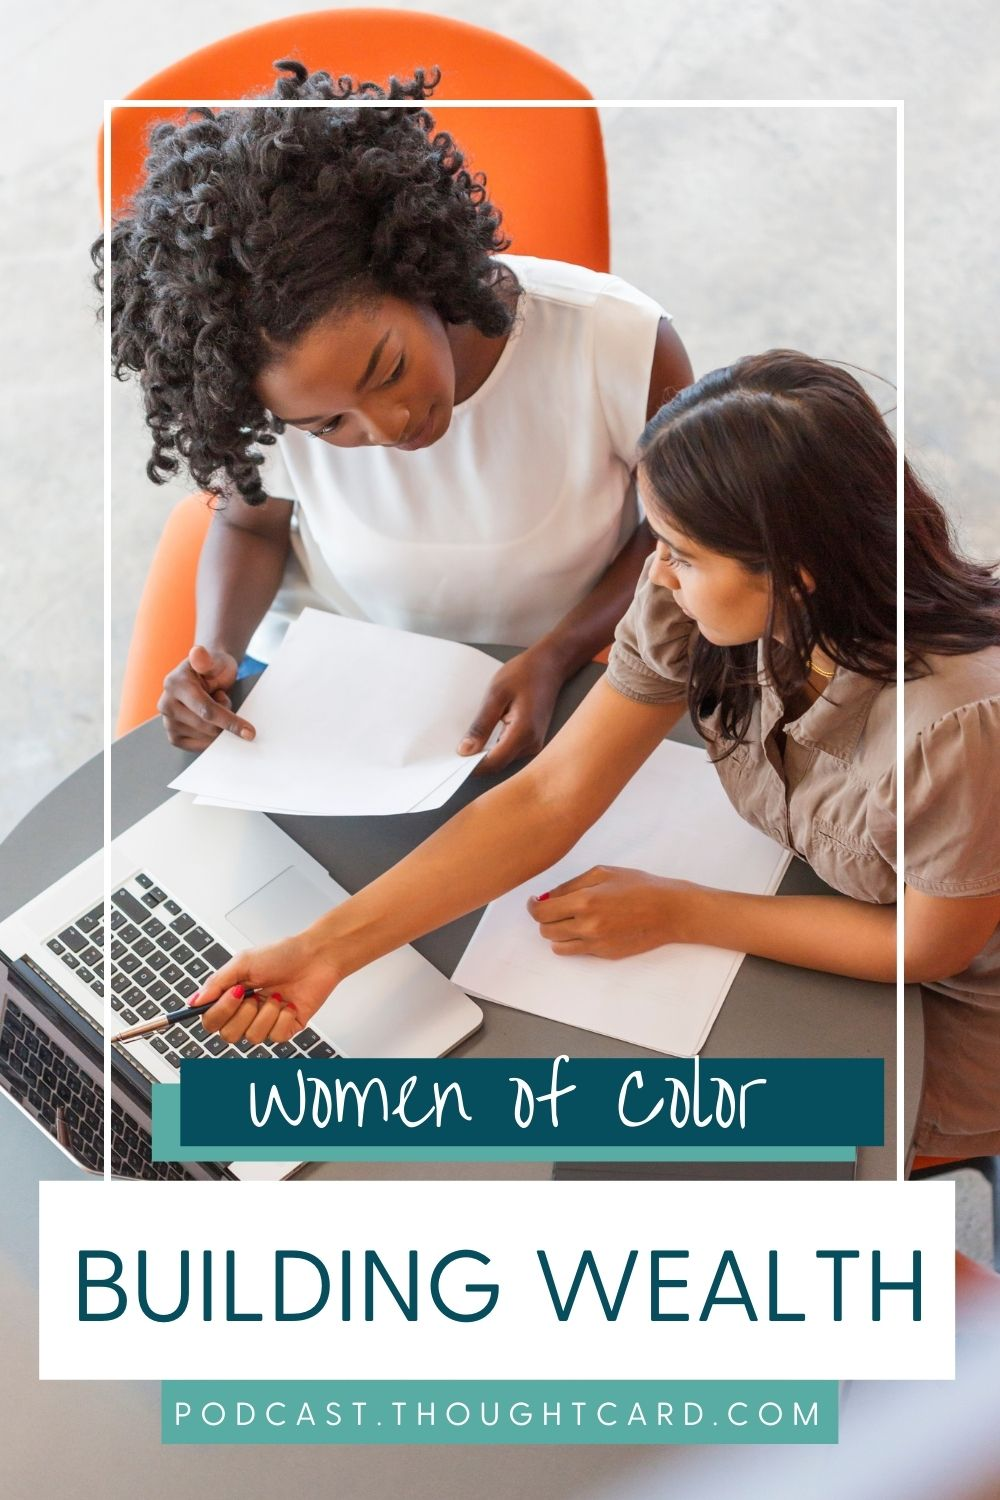 How Women of Color are building wealth.